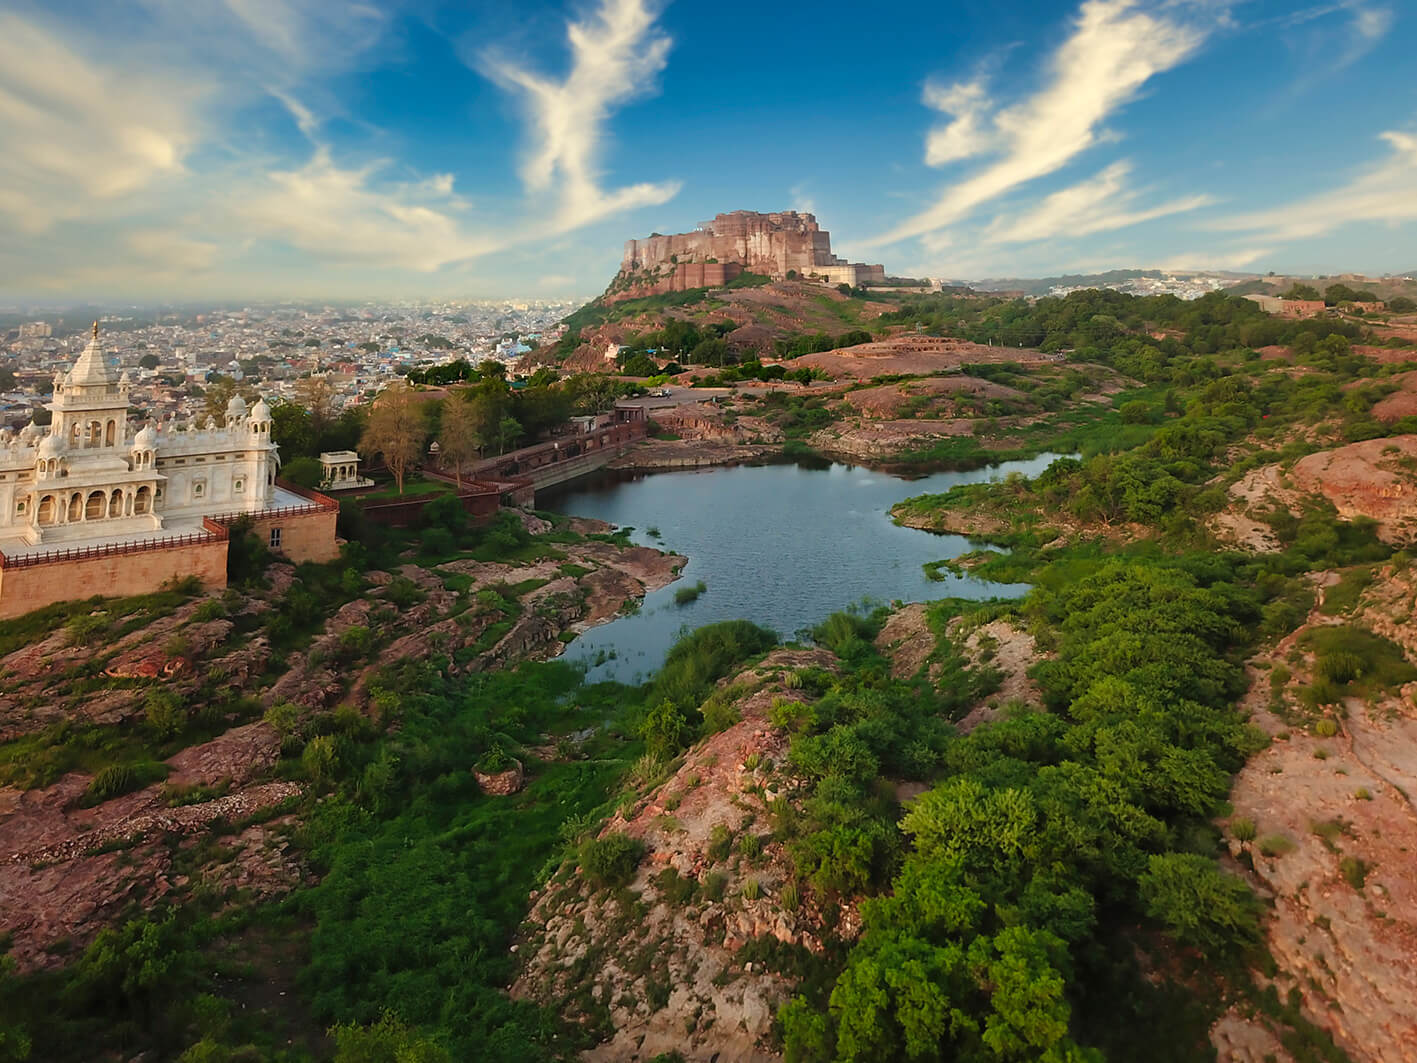 Rao Jodha Desert Rock Park in Jodhpur with Mehrangarh Fort in the background| Cross Border Conversations | Pradip Krishen X Prof. Anne Feenstra | STIR X LOCO Design